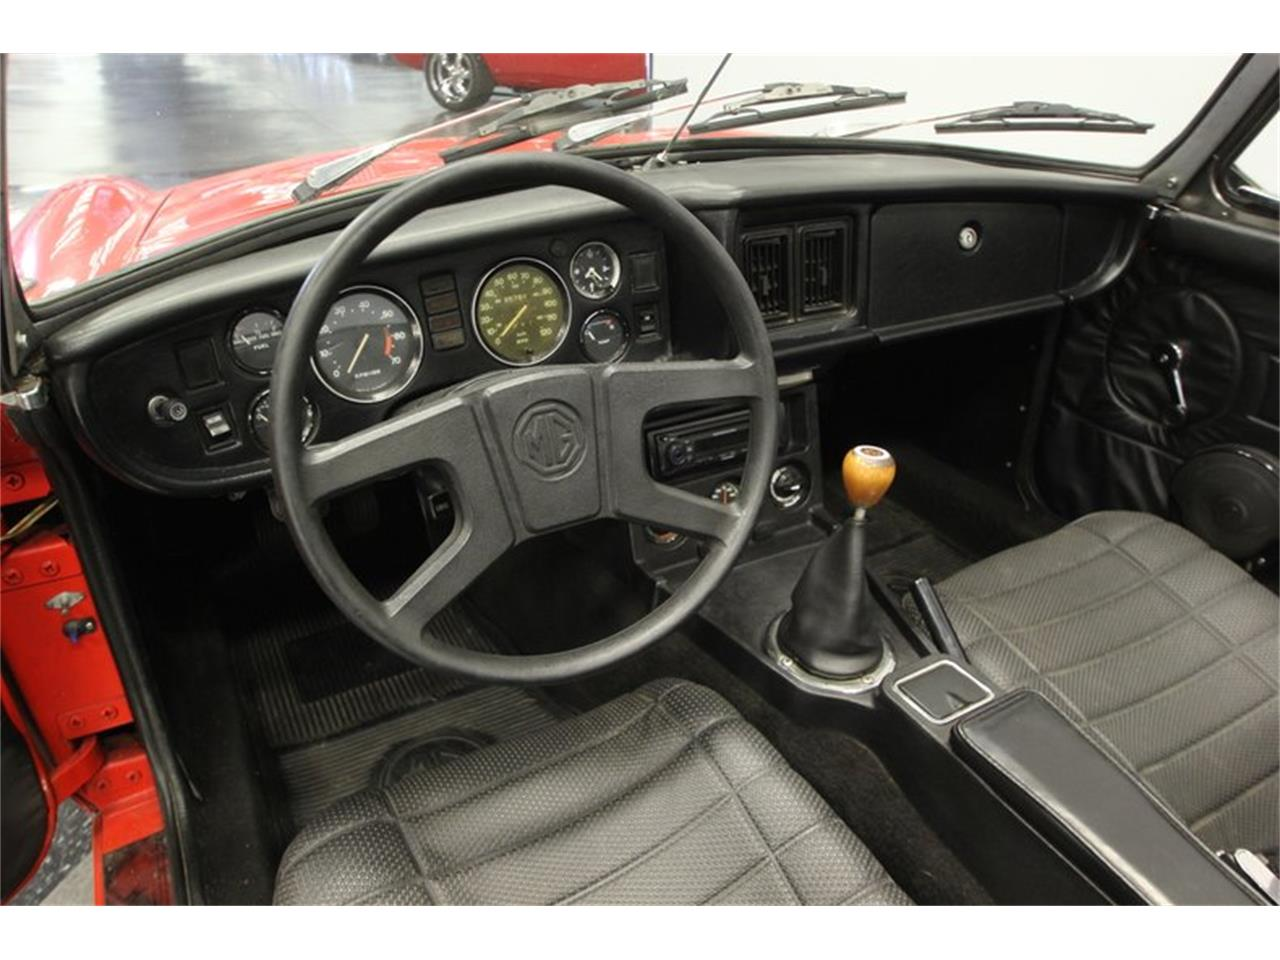 1978 MG MGB for sale in Lutz, FL – photo 48